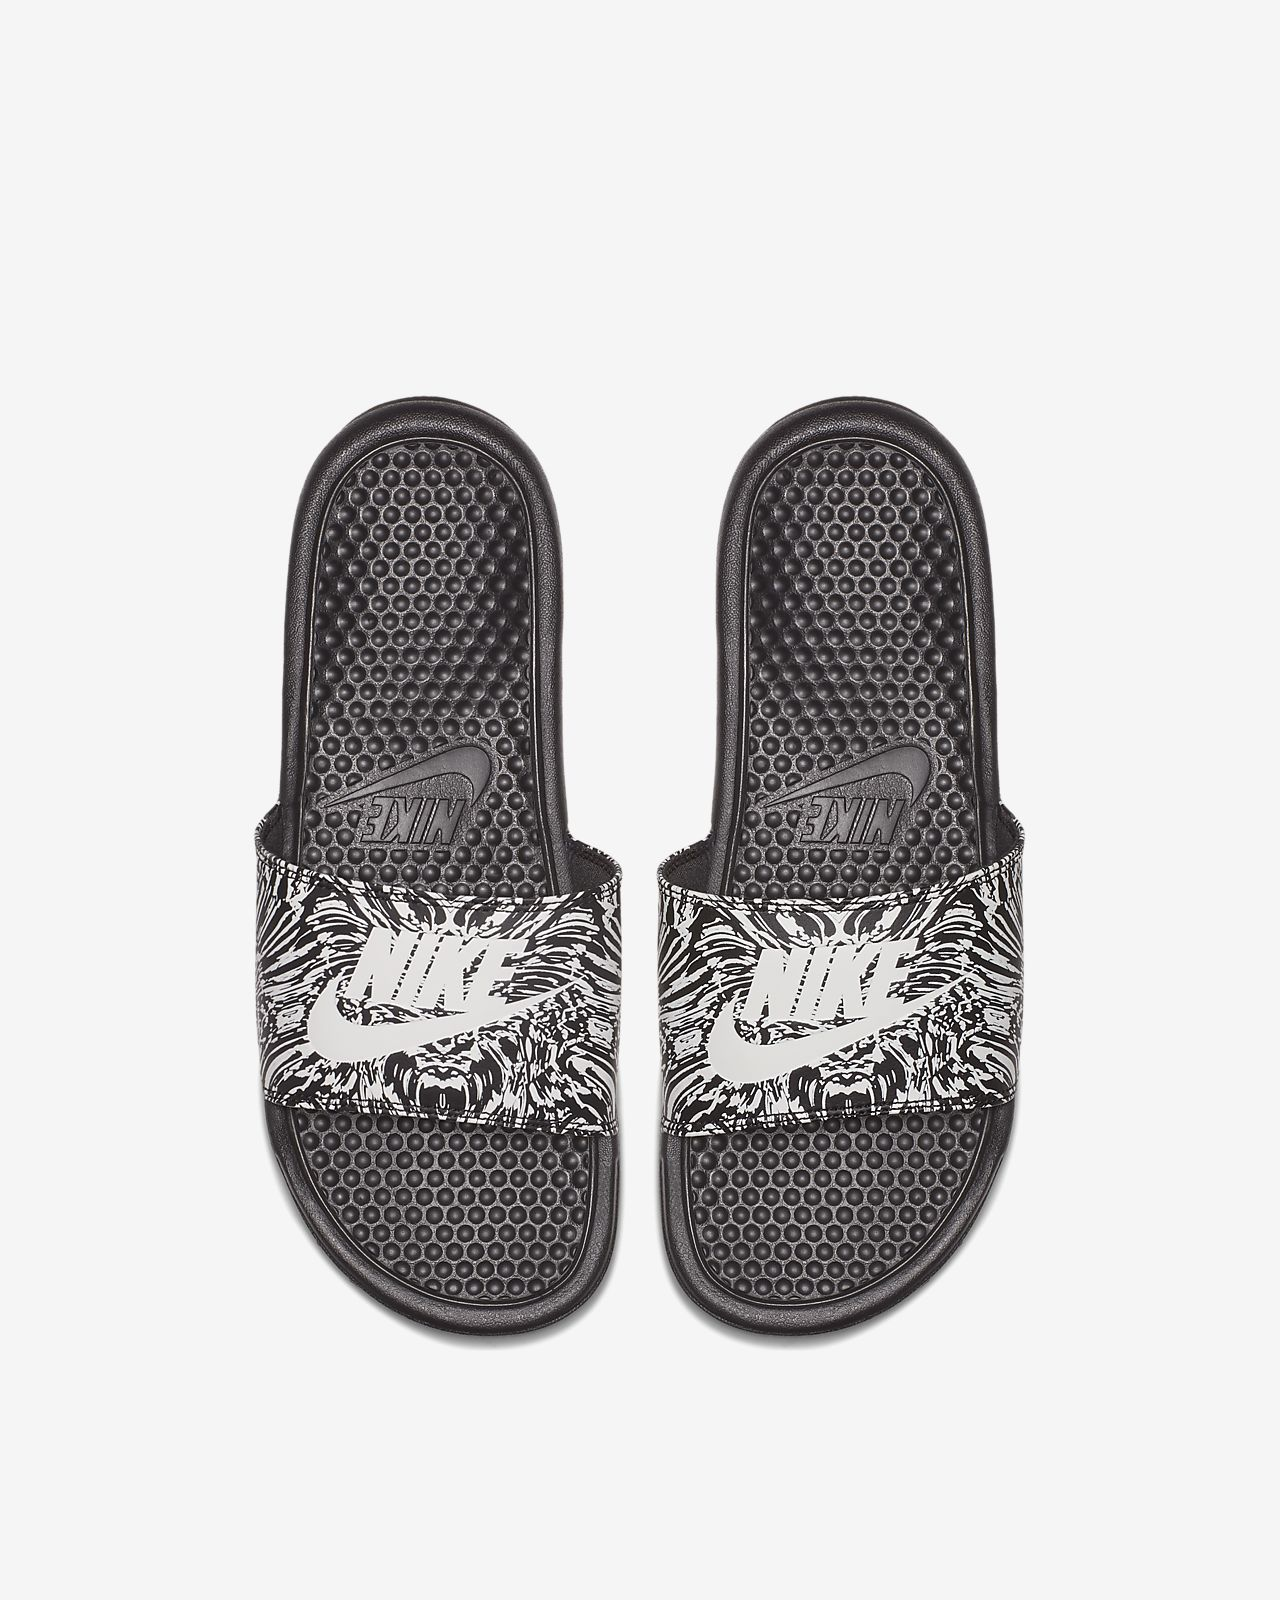 2014 newest cheap online NIKE BENASSI JUST DO IT SLIDES cheap sale 100% guaranteed clearance finishline sale shop kJkrV7CJV